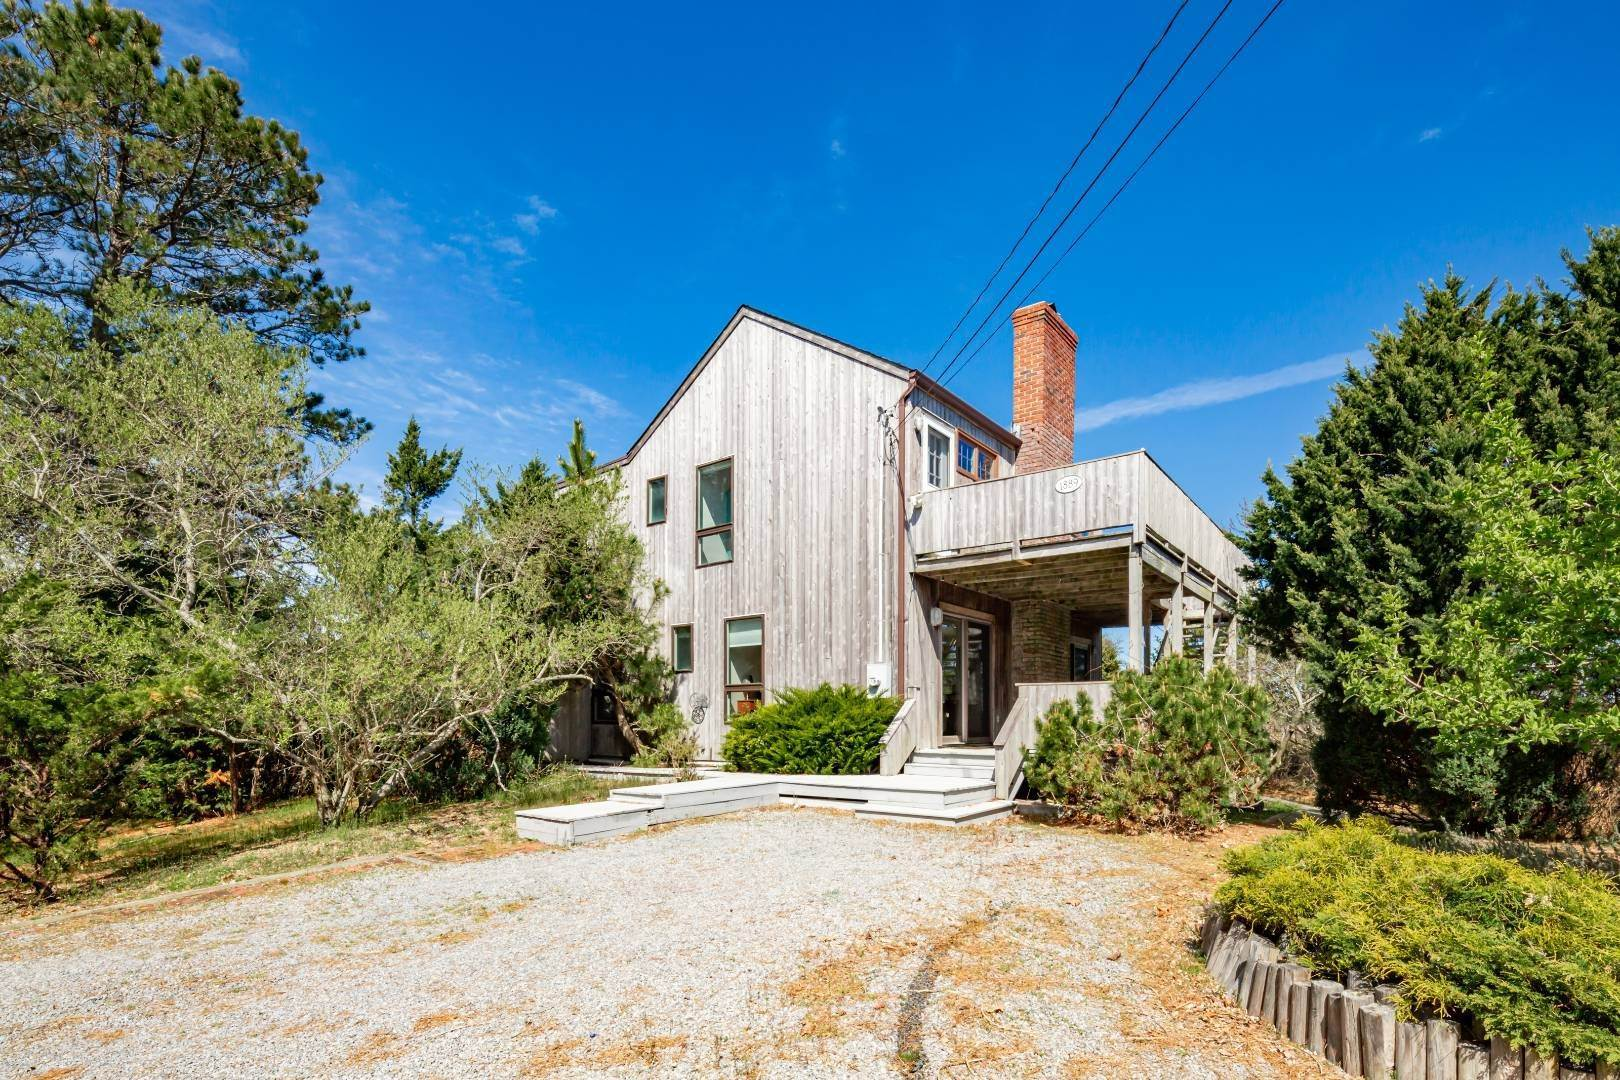 Single Family Home for Sale at Napeague Summer Retreat 1889 Montauk Highway, Napeague, NY 11930